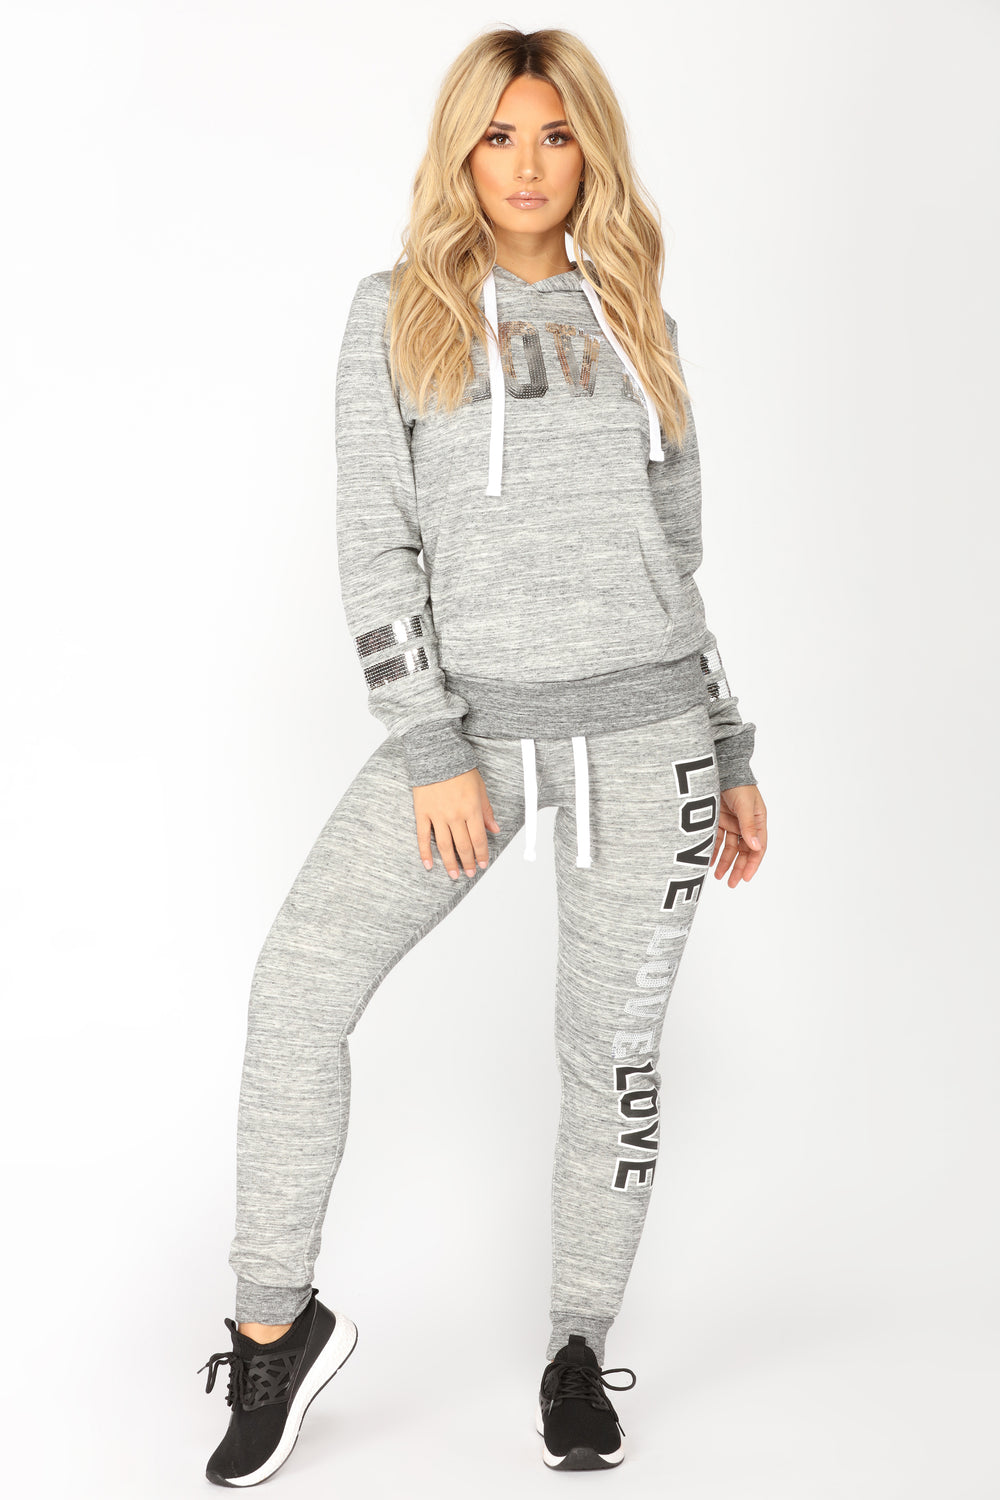 Dreamlover Lounge Joggers - Marled Charcoal